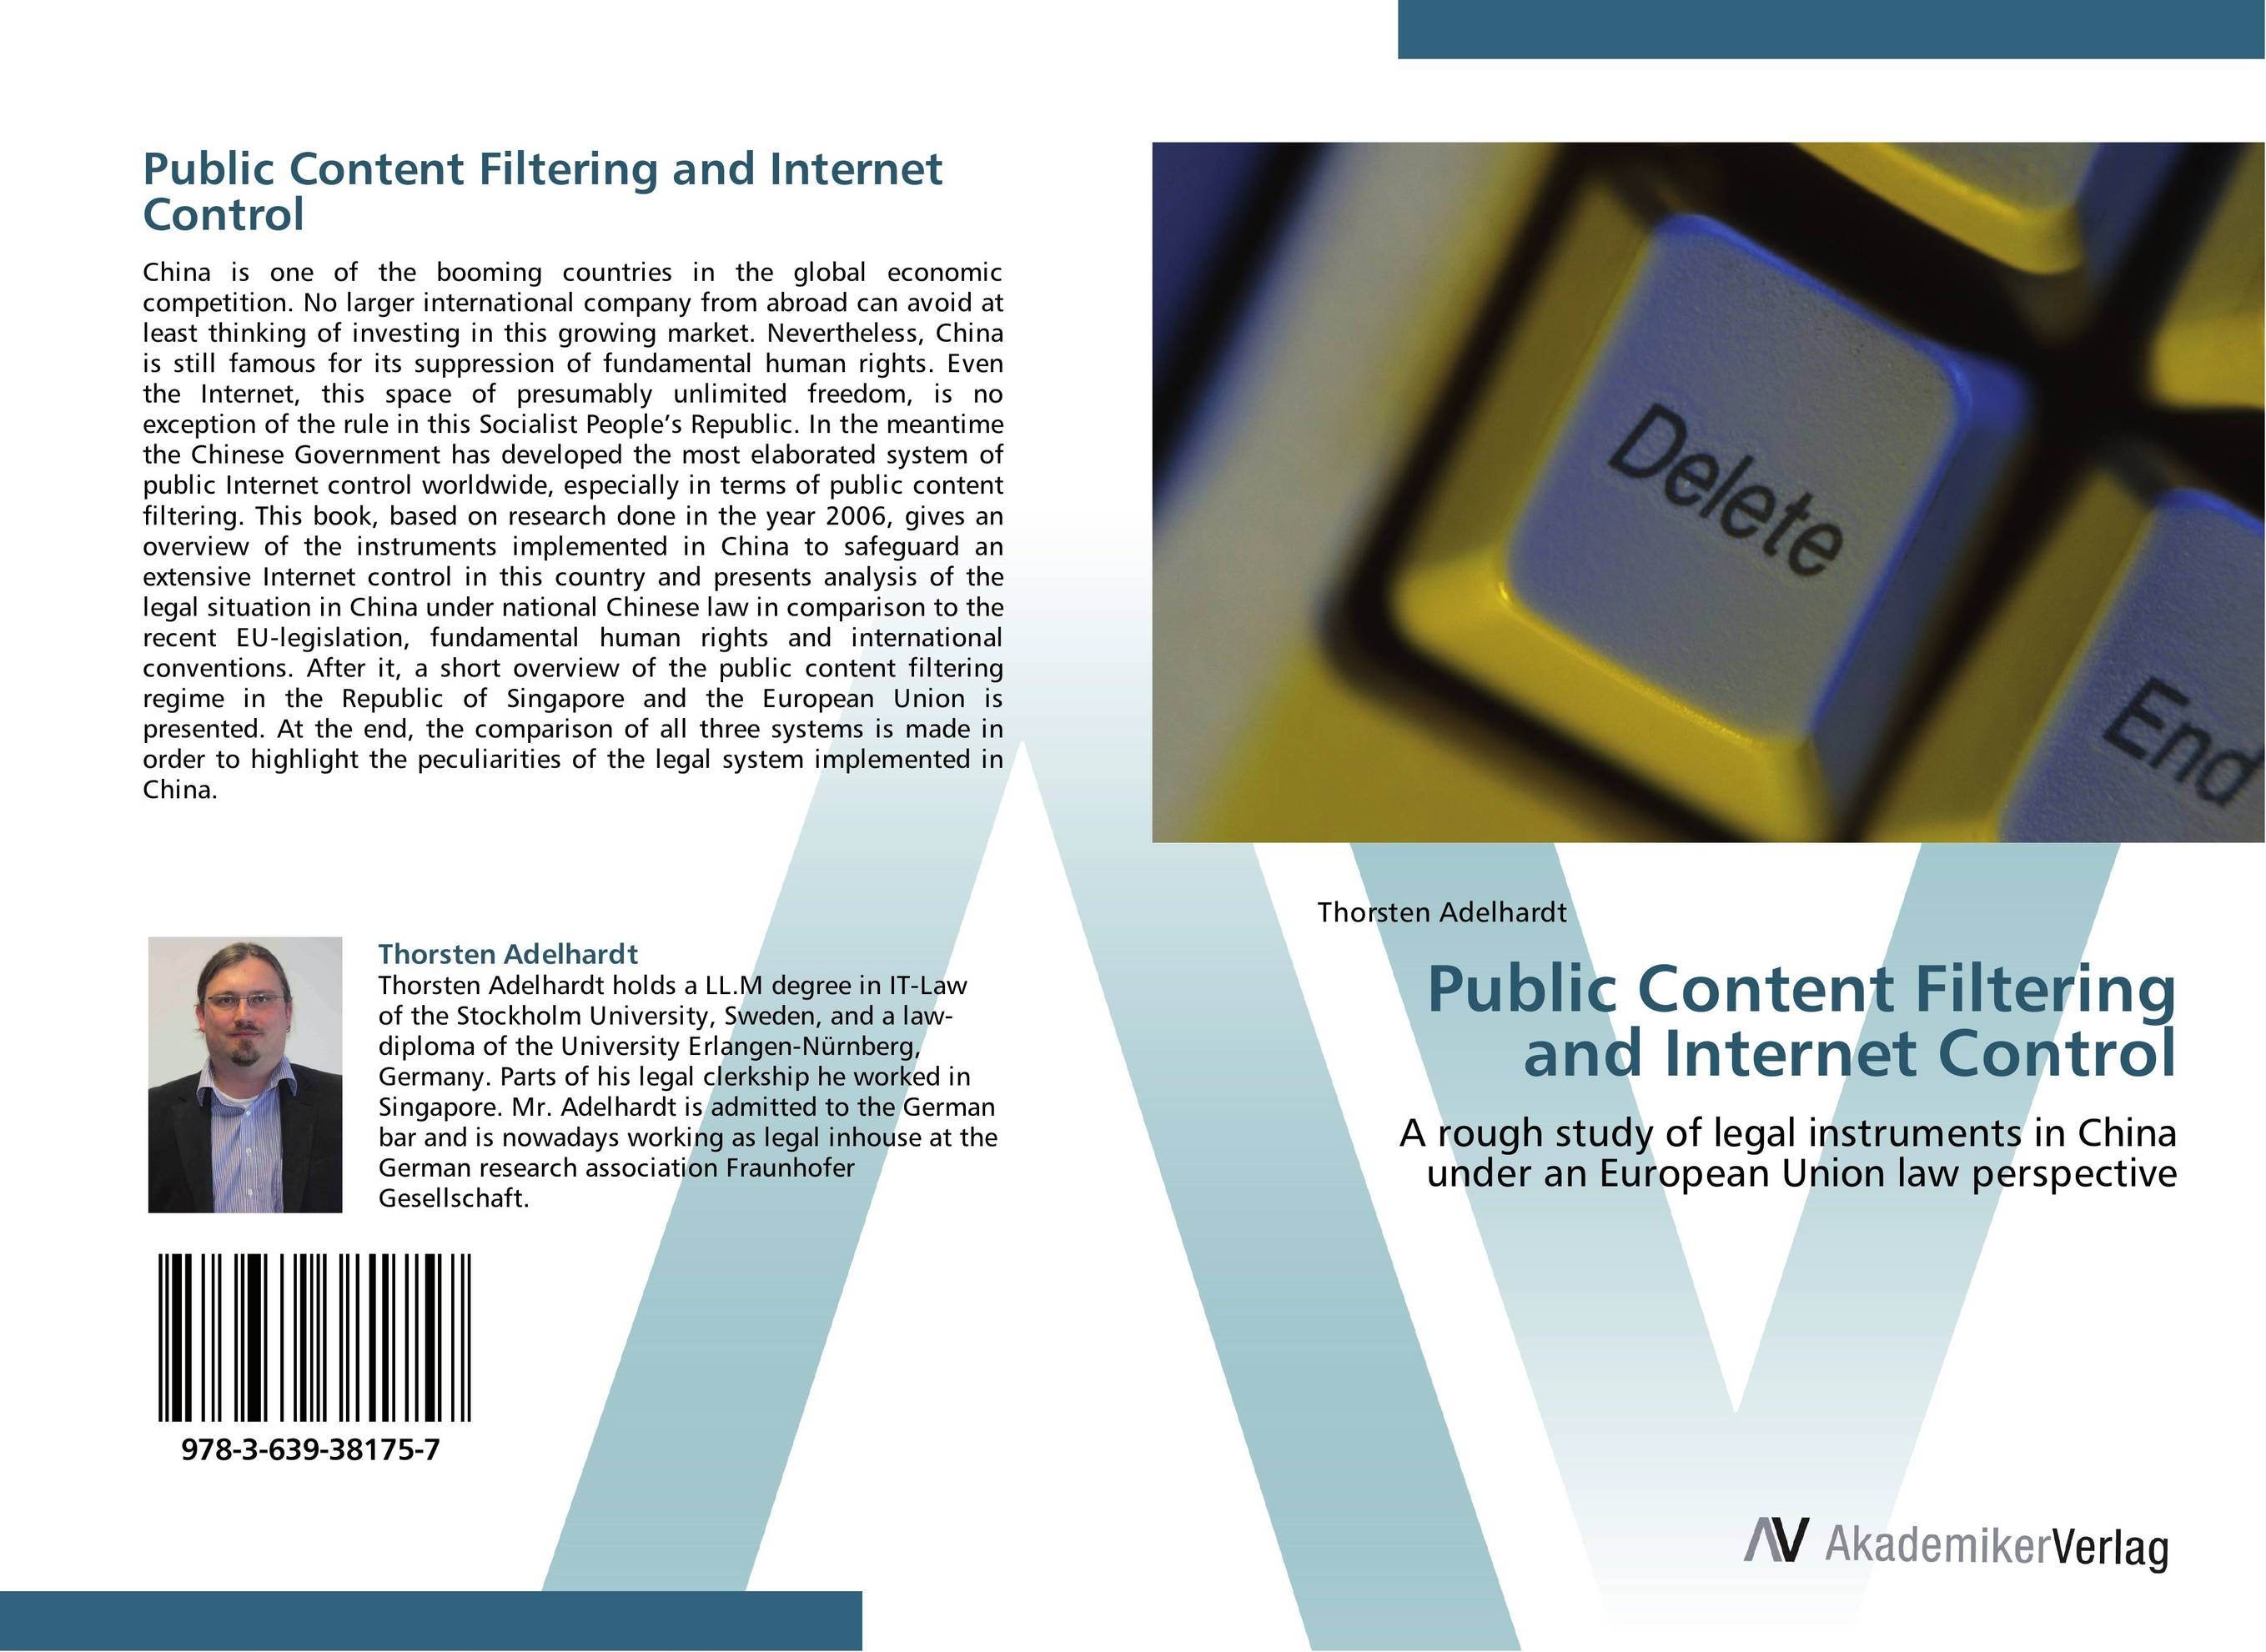 Public Content Filtering and Internet Control doug young the party line how the media dictates public opinion in modern china